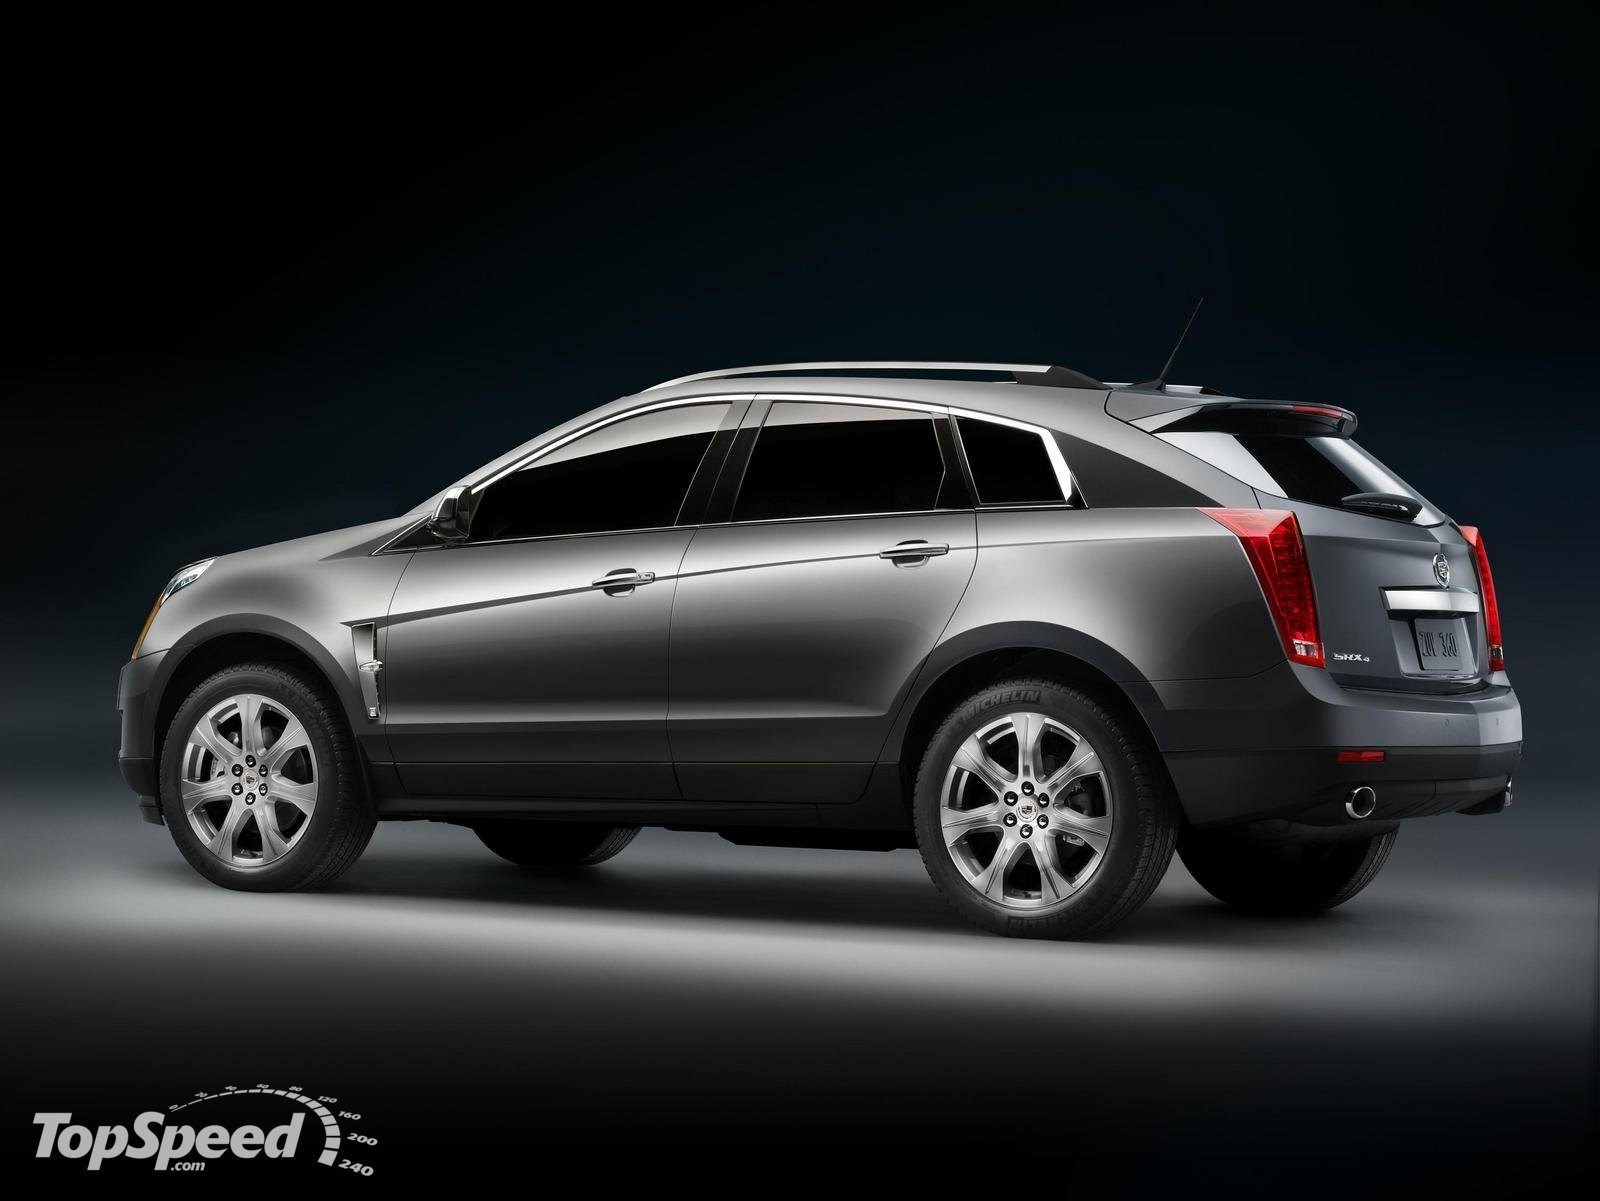 2010 2012 cadillac srx picture 279213 car review top speed. Black Bedroom Furniture Sets. Home Design Ideas